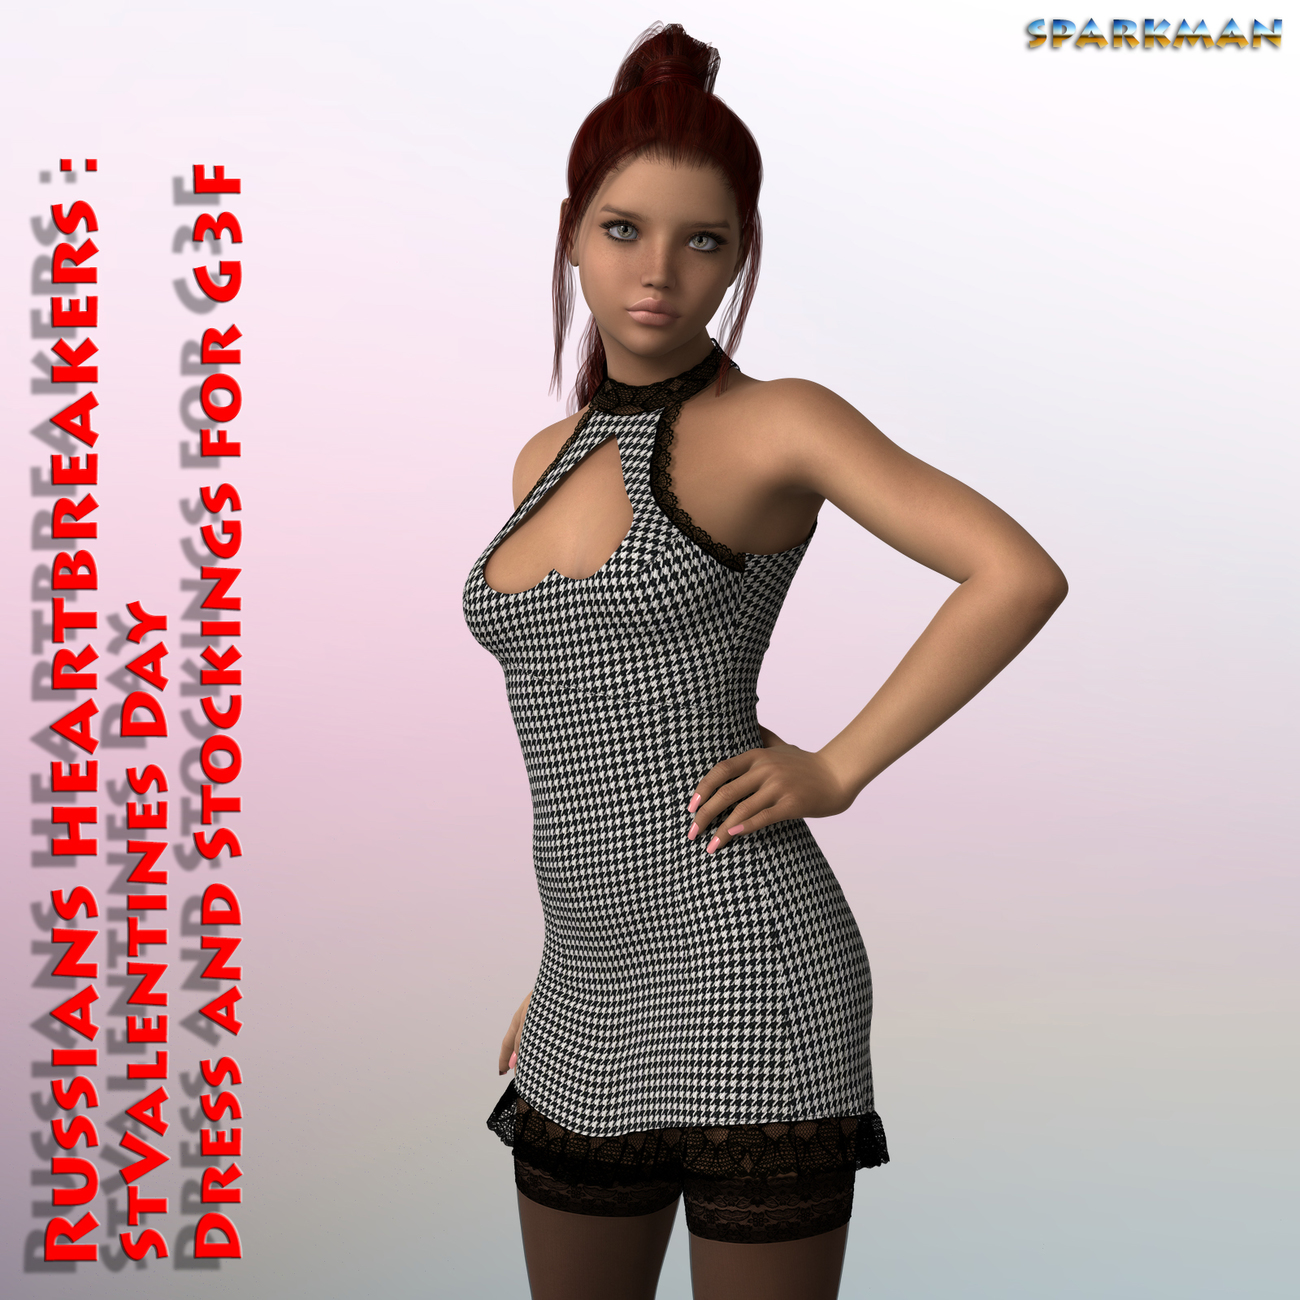 New textures and materials by sparkman